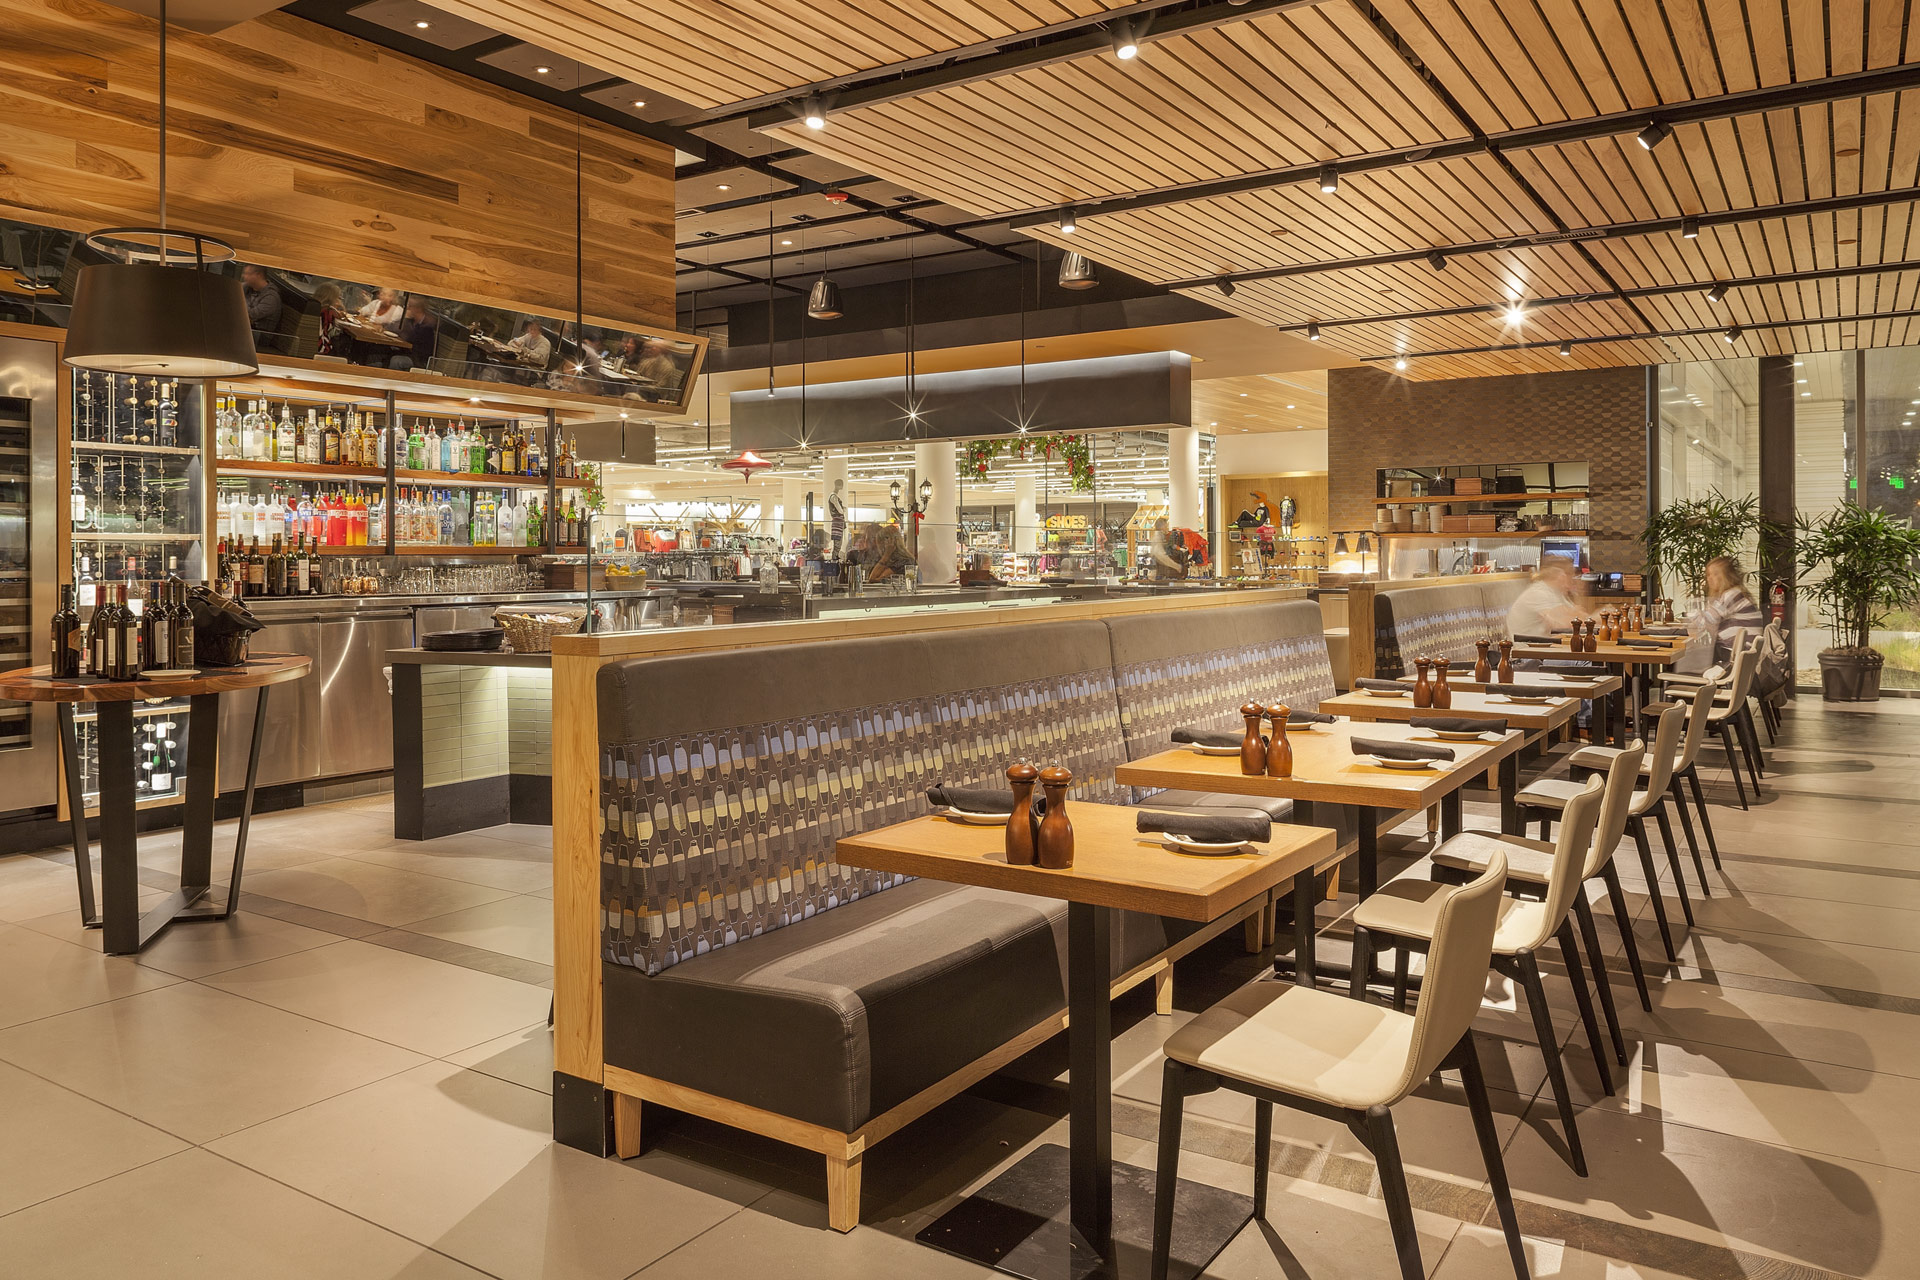 Bazille at Nordstrom Restaurant architecture